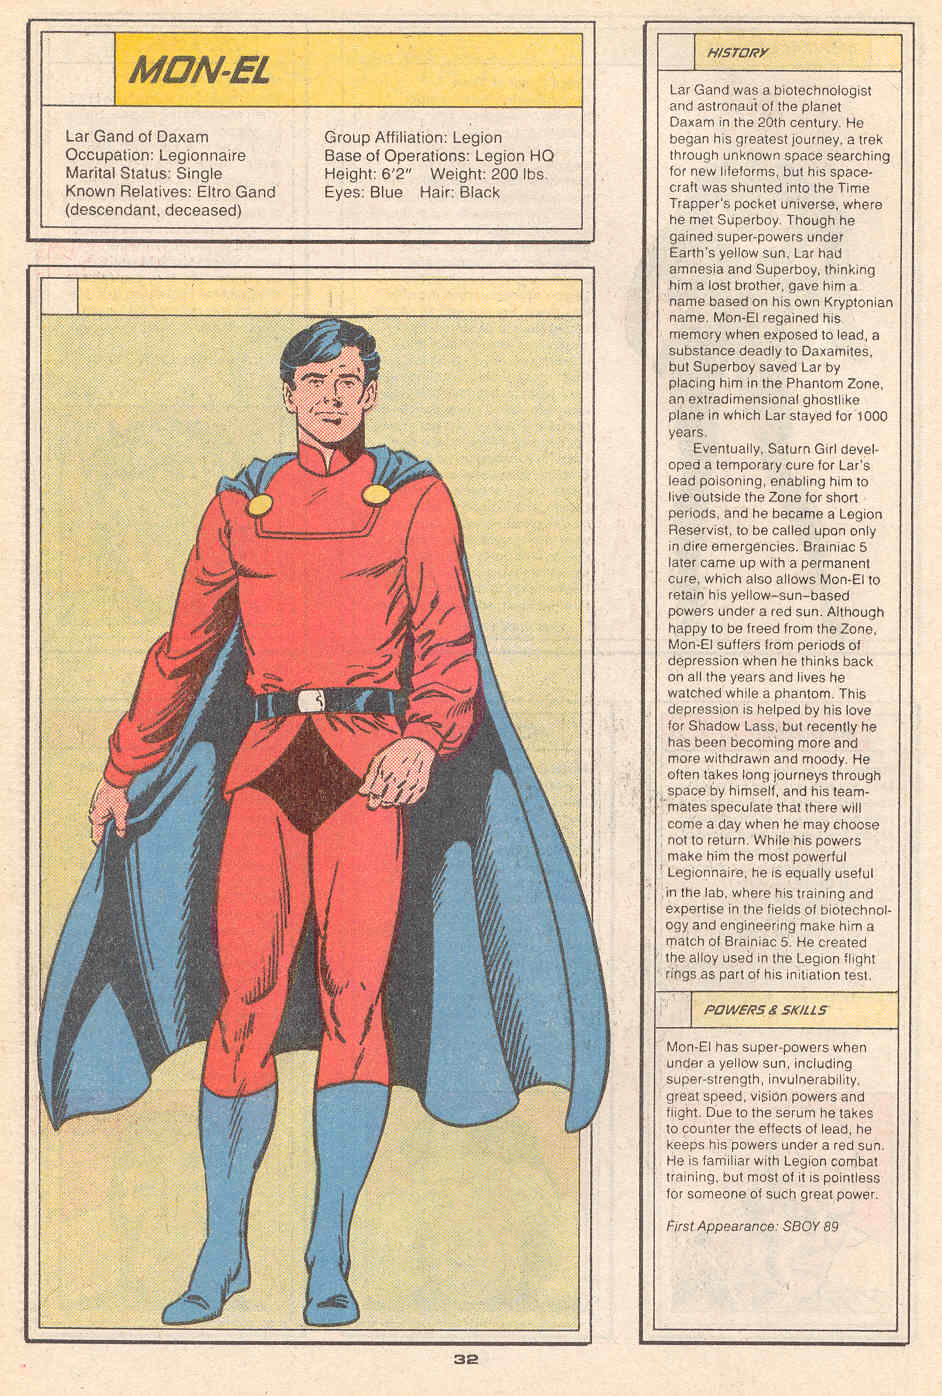 Mon-El by Curt Swan and Robert Campanella - Who's Who in the Legion of Super-Heroes #4